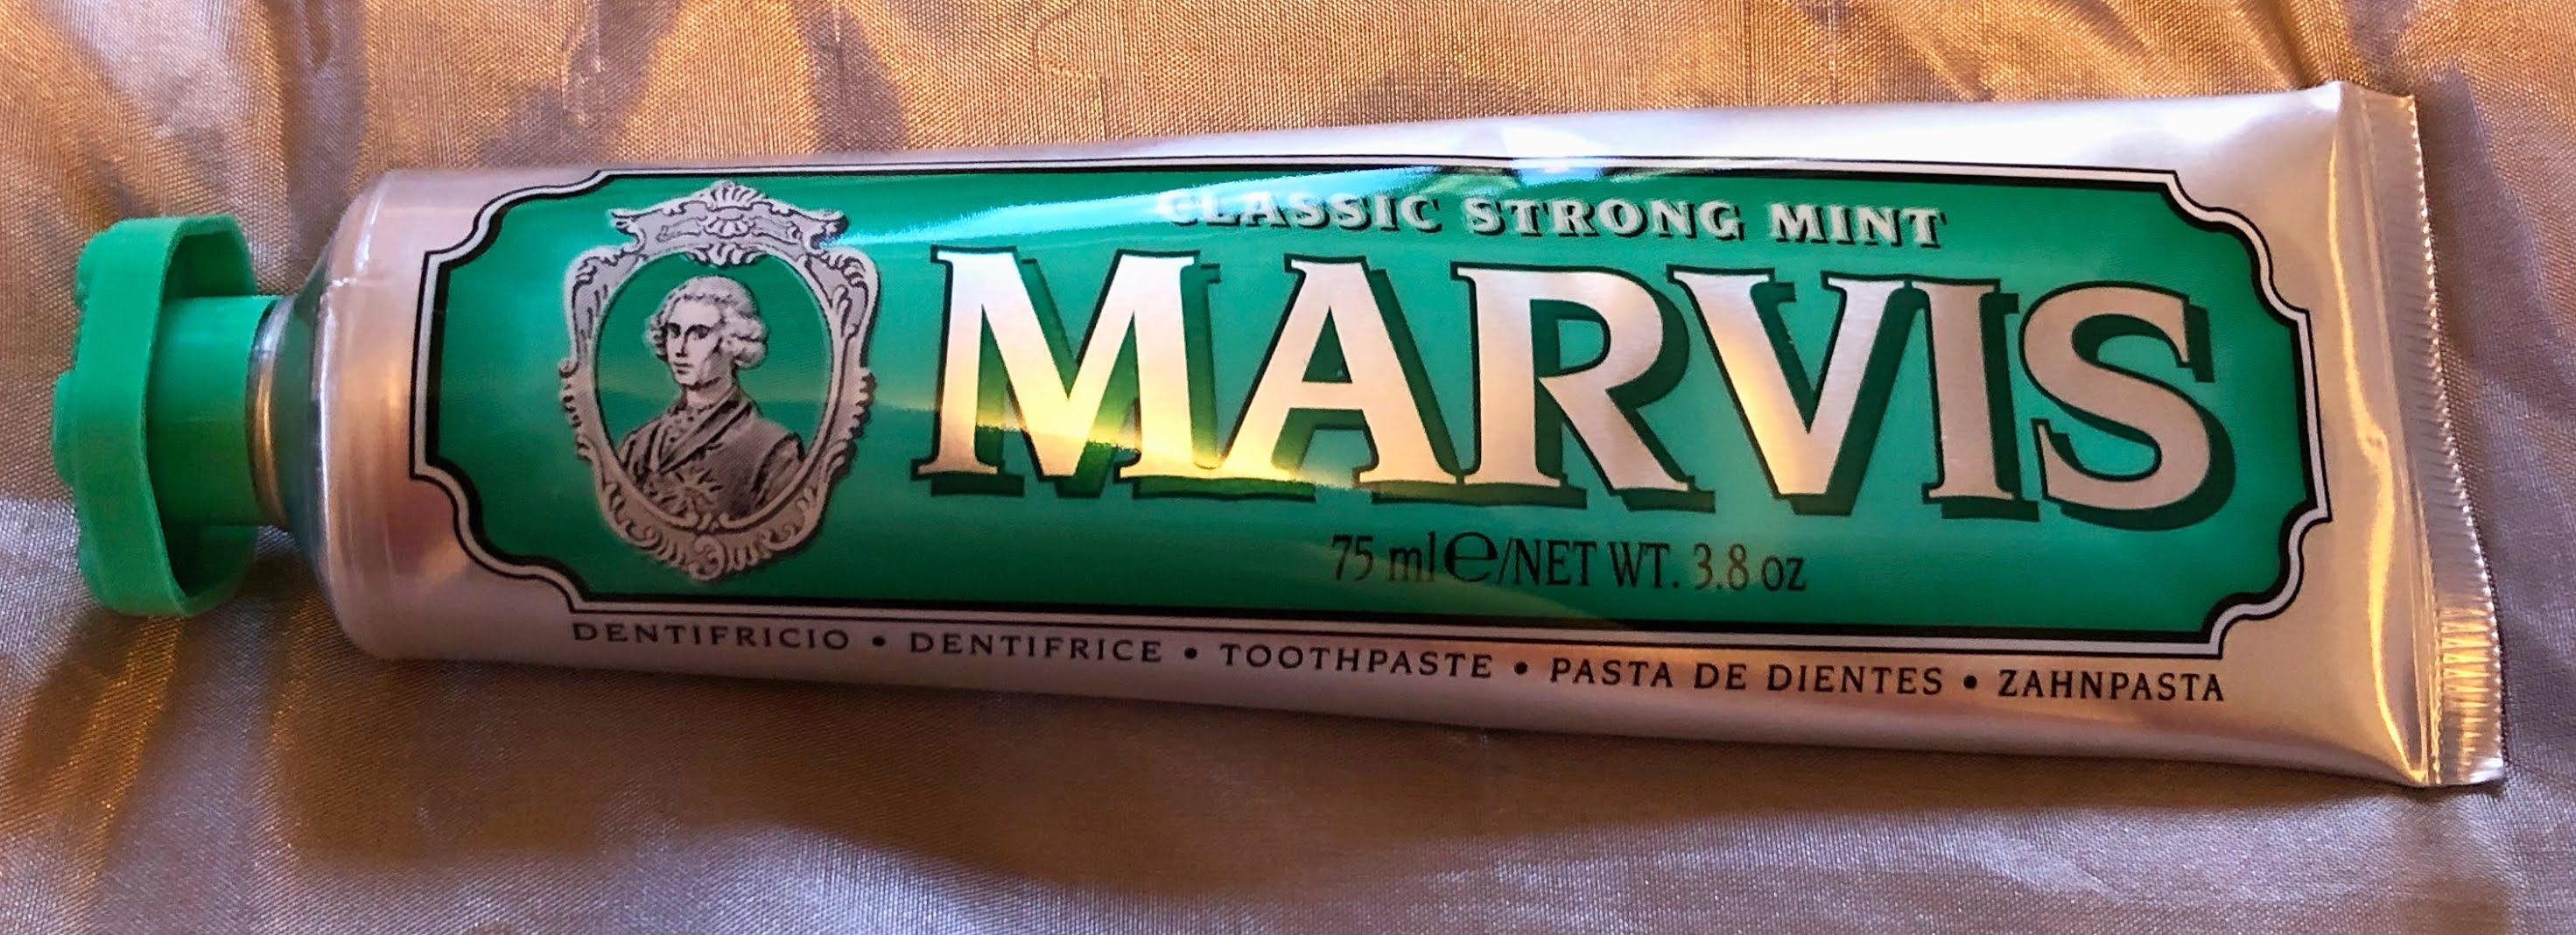 Marvis Class Strong Mint toothpaste